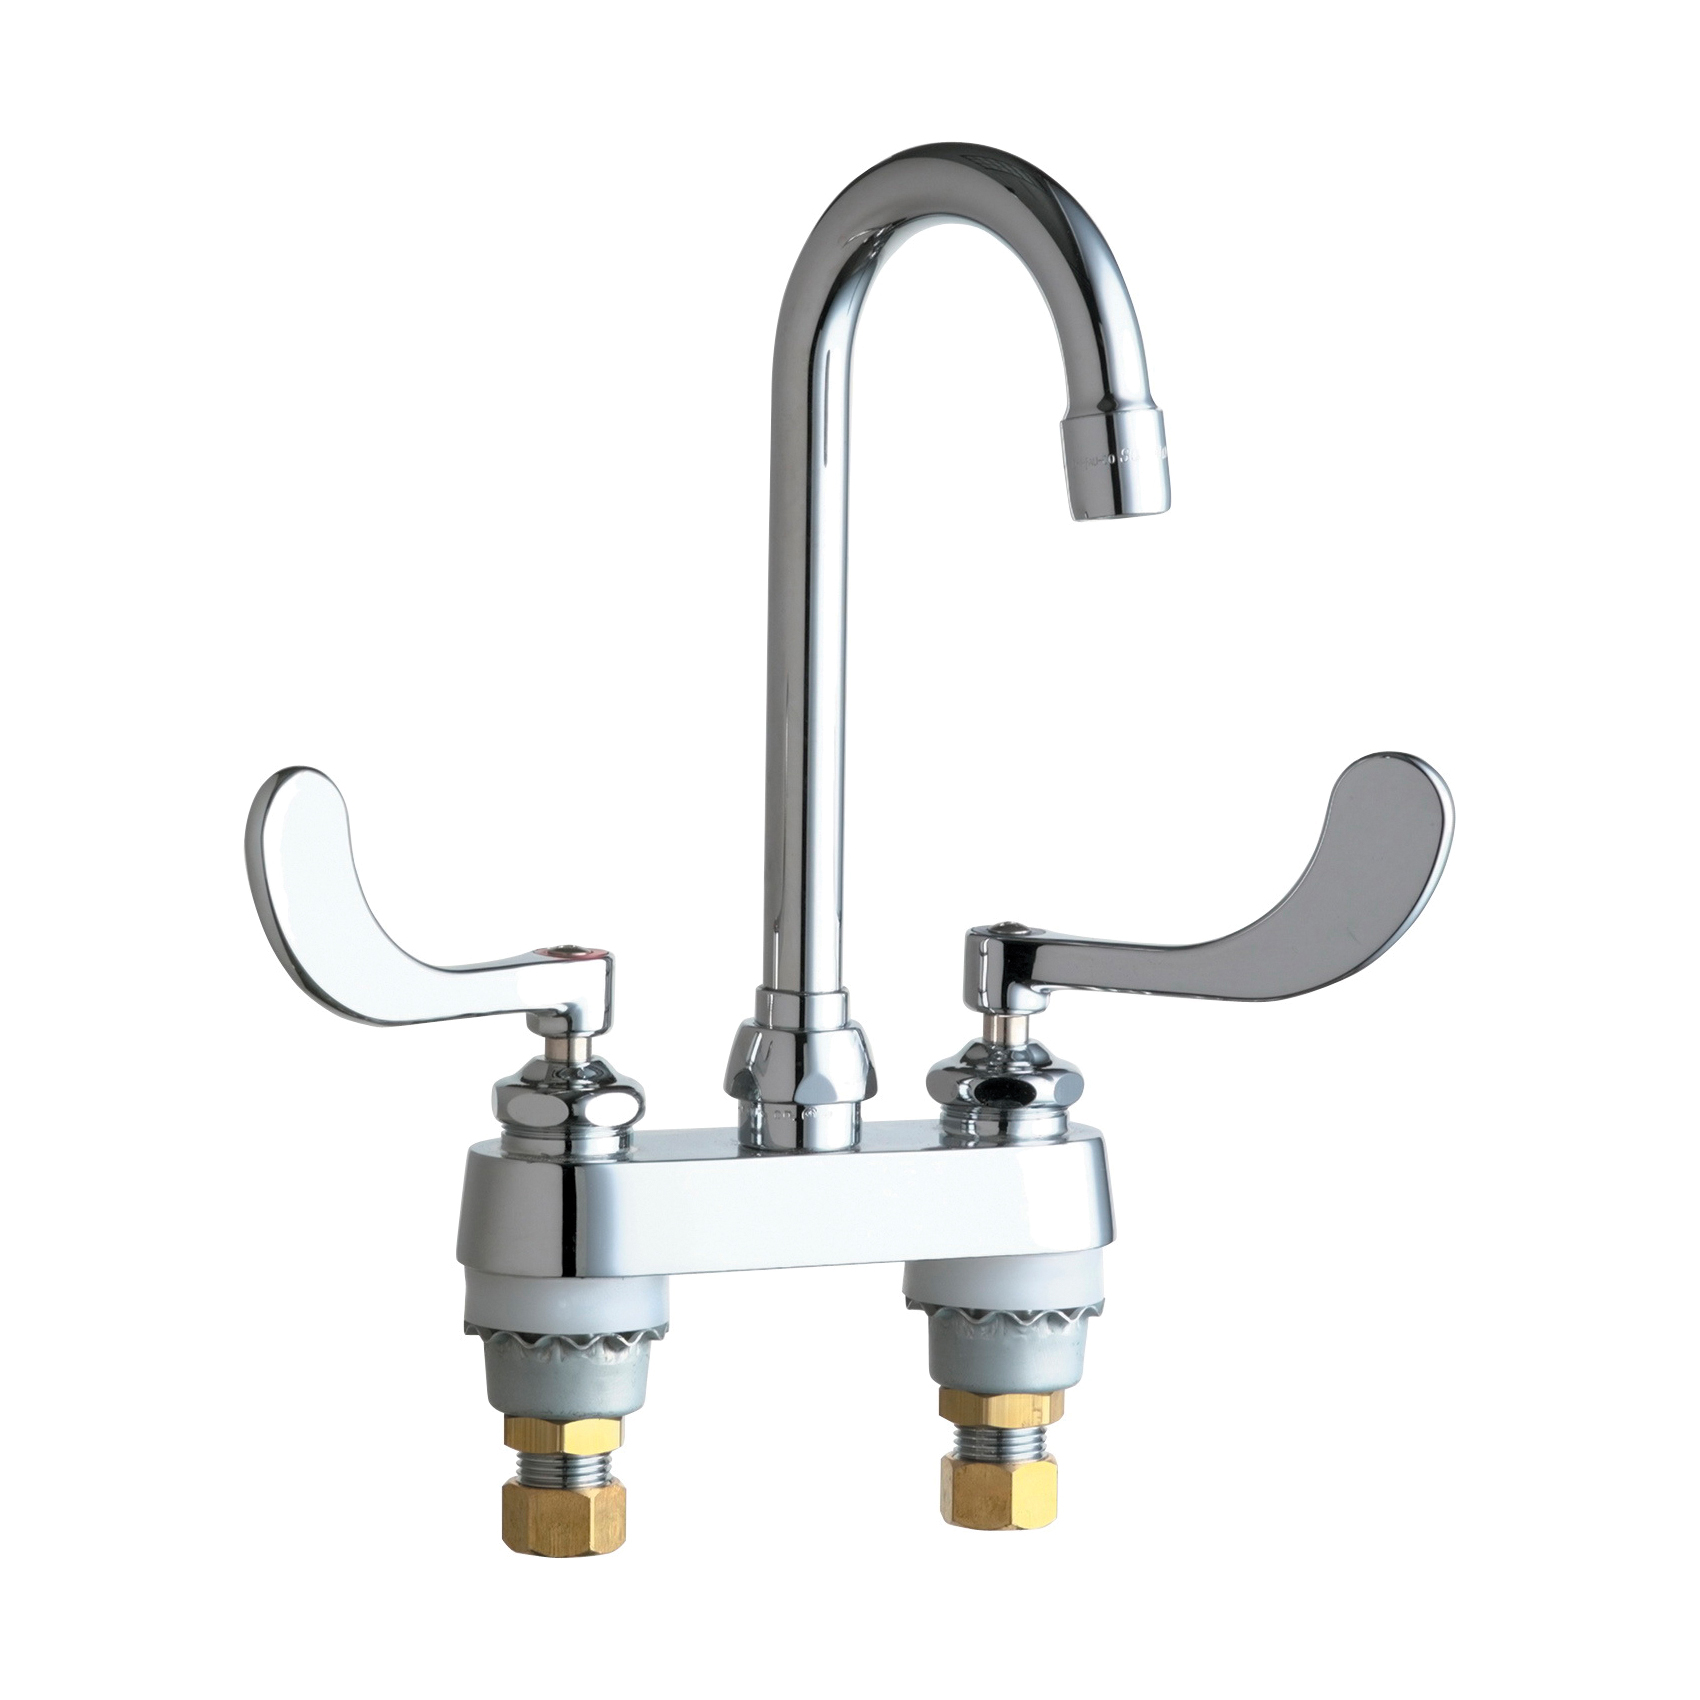 Chicago Faucet® 895-317E35ABCP Lavatory Sink Faucet, Polished Chrome, 2 Handles, 1.5 gpm Flow Rate